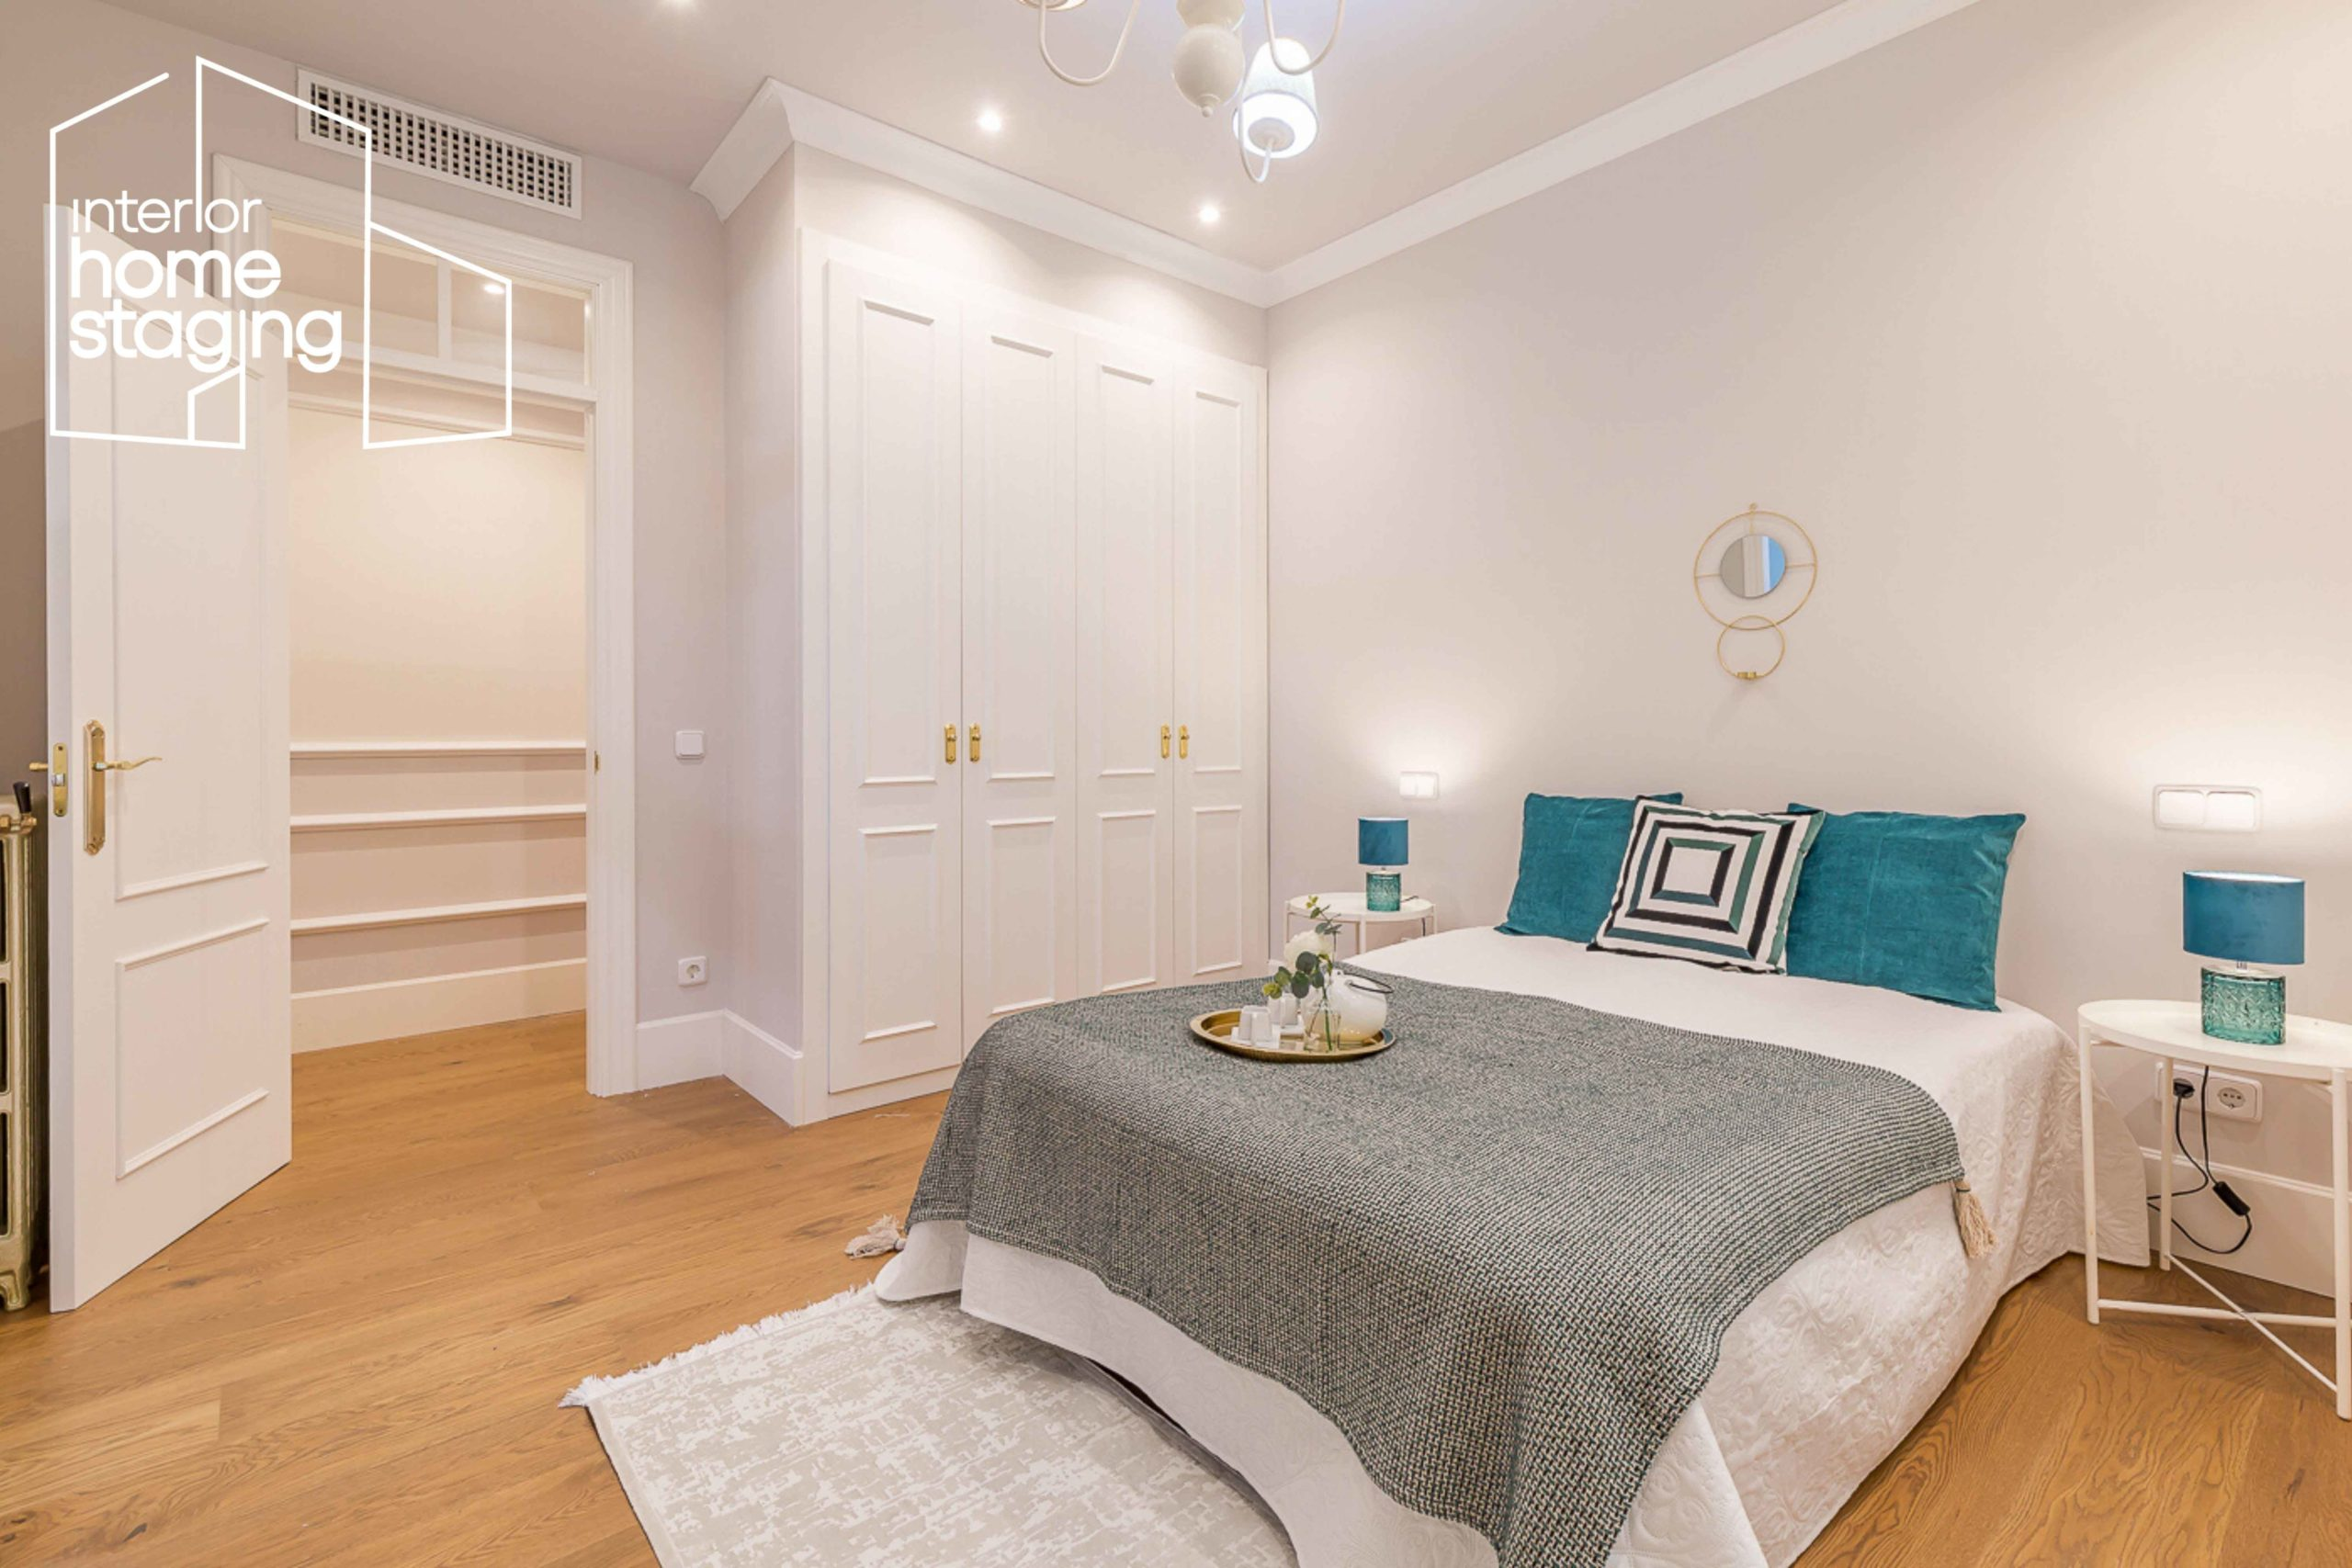 Home Staging dormitorio vivienda venta Barrio Salamanca Madrid